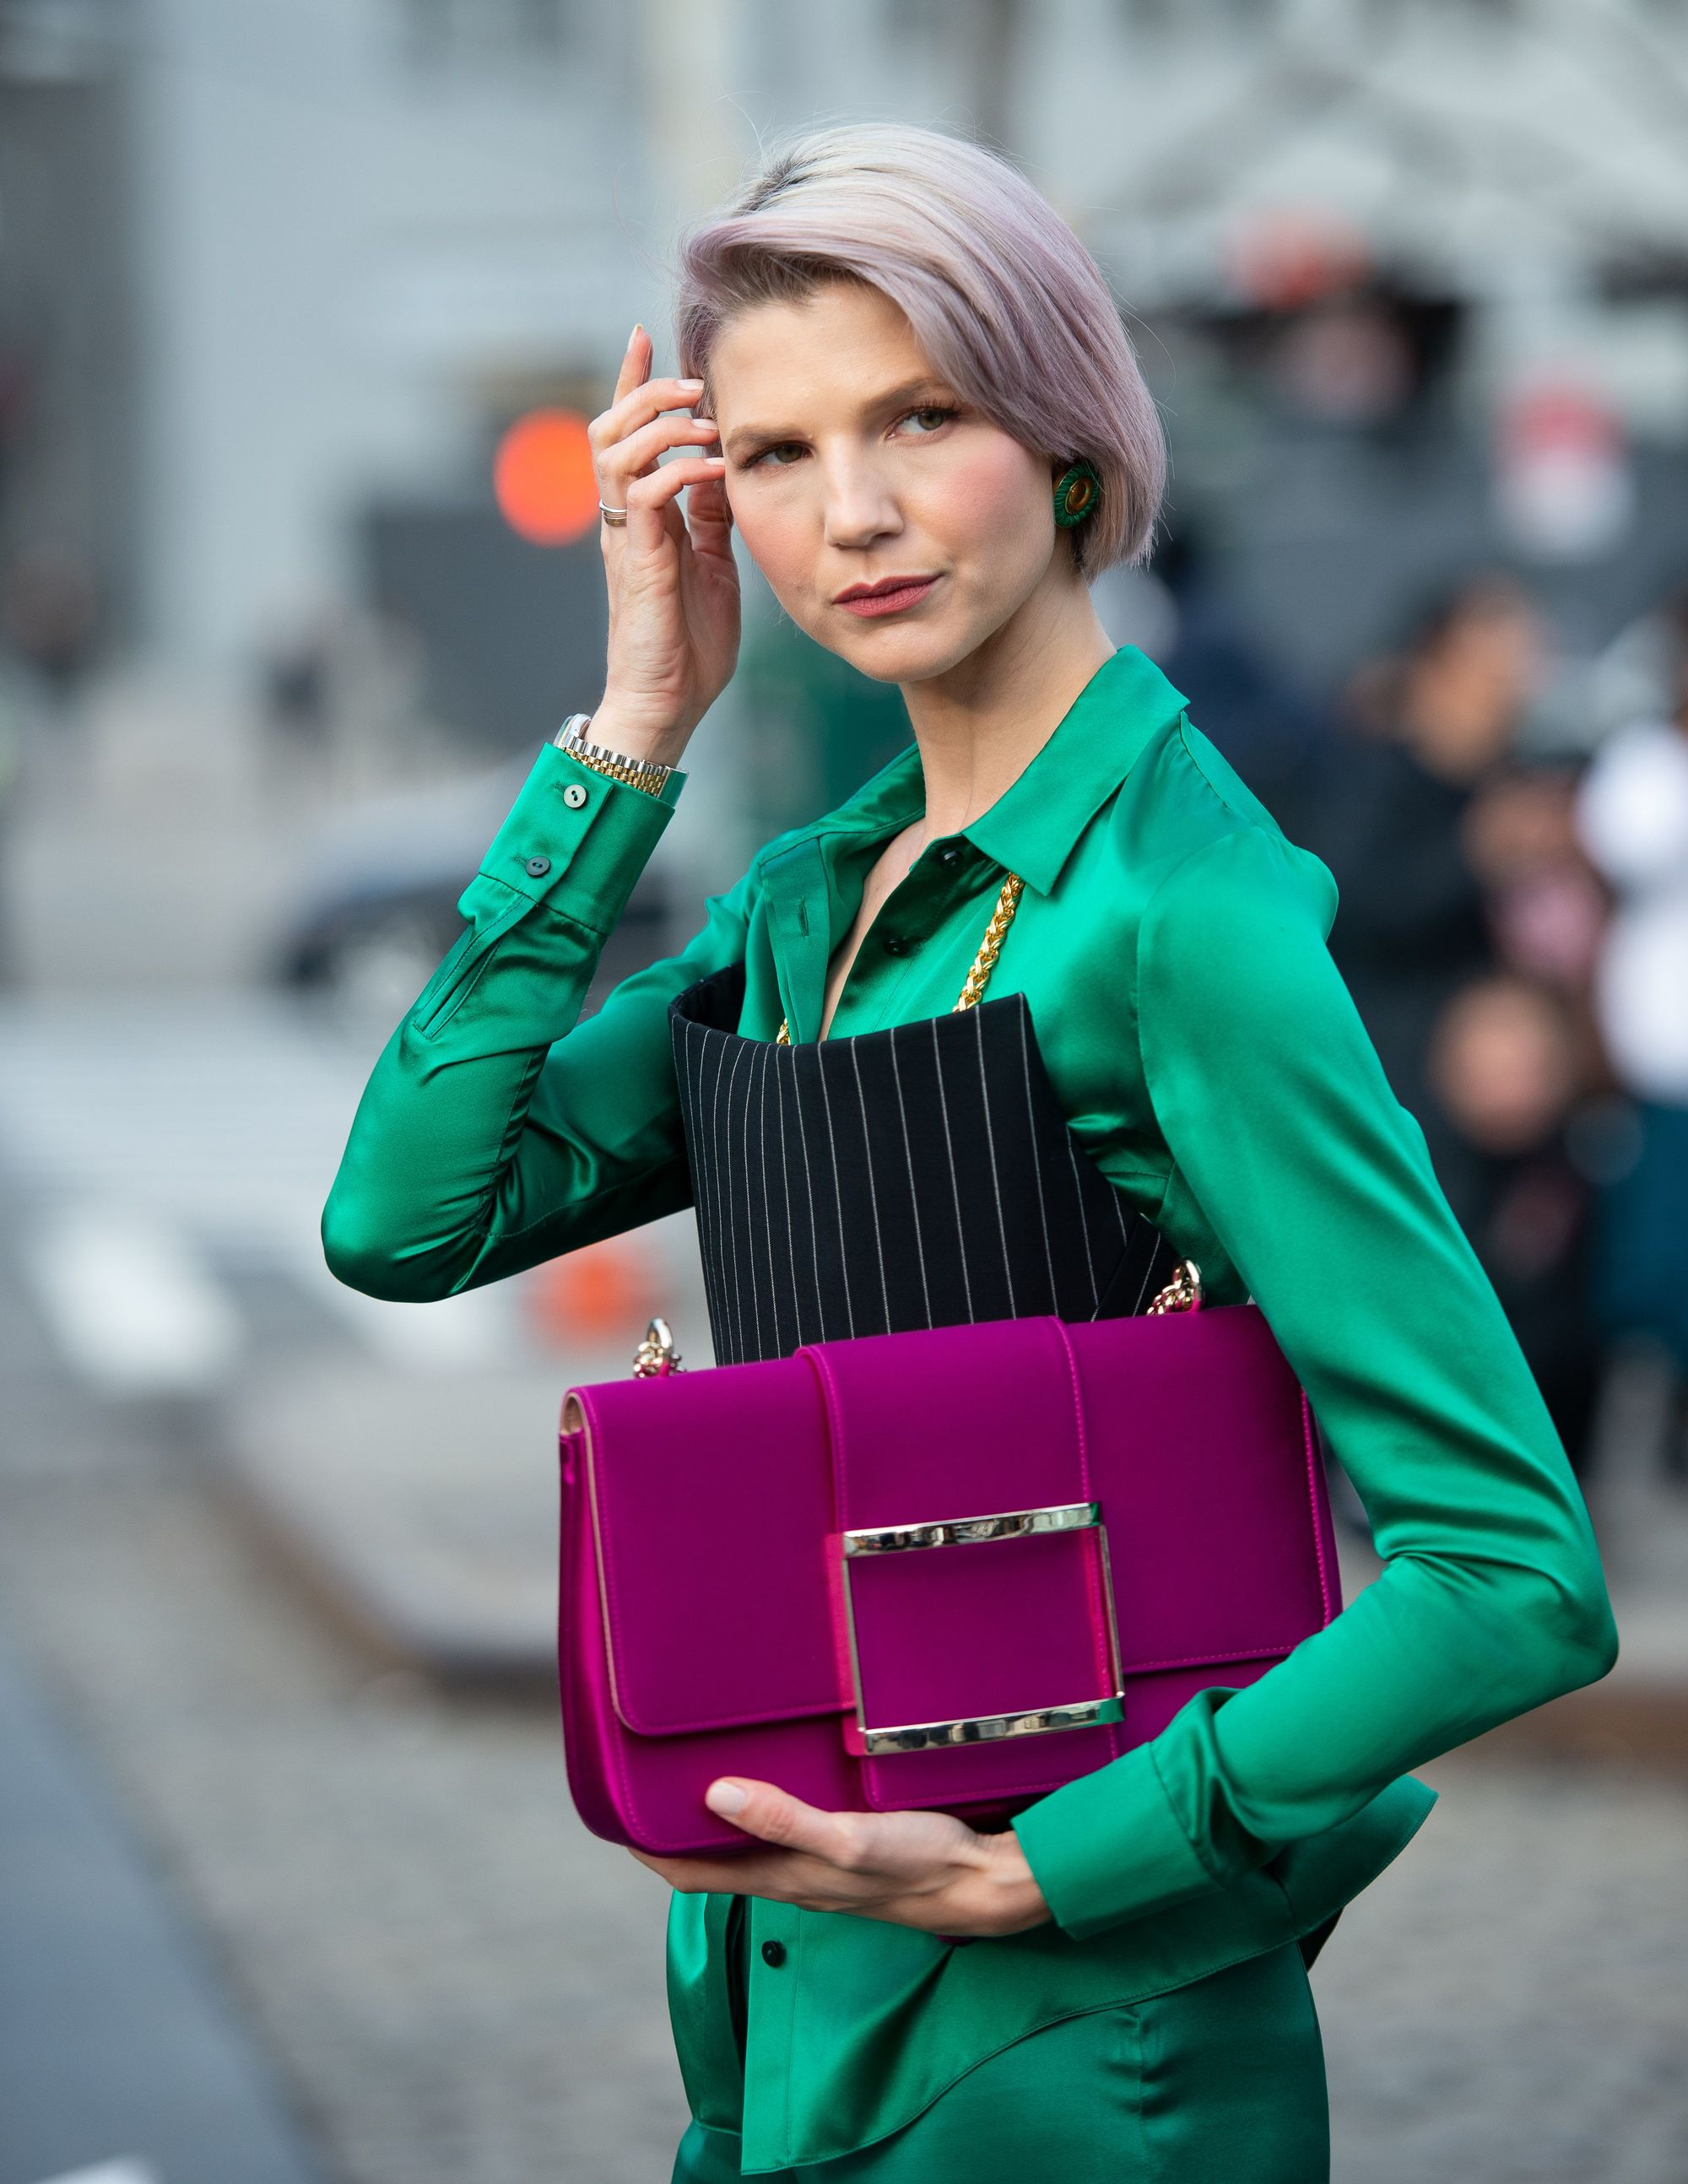 Spring hair colours: Shot of woman with short lilac hair, wearing green top and holding purple bag outside